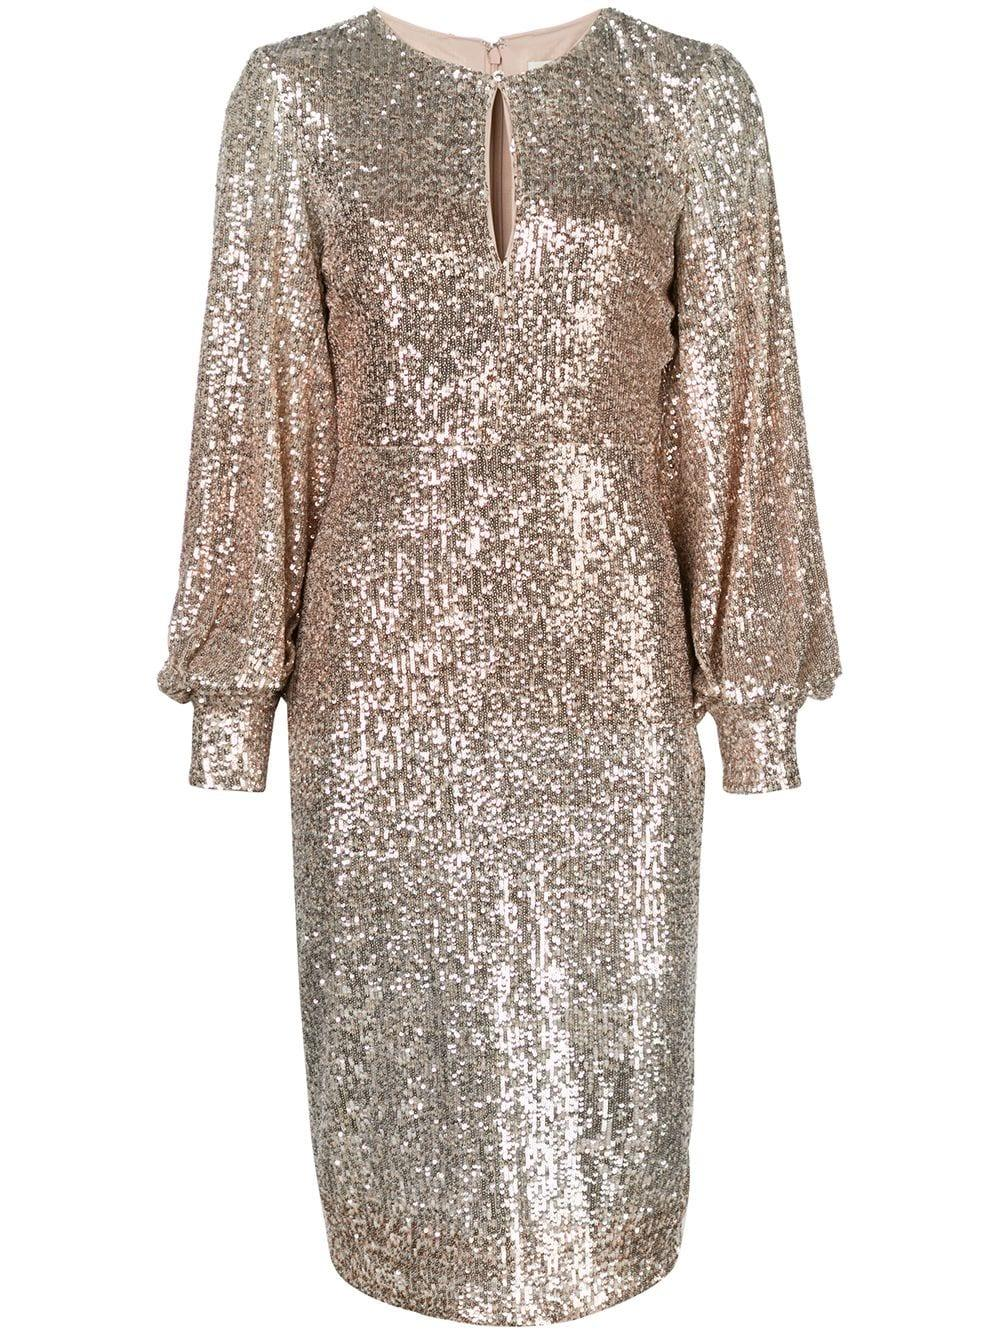 Ombre Sequin Long Sleeve Sheath Dress